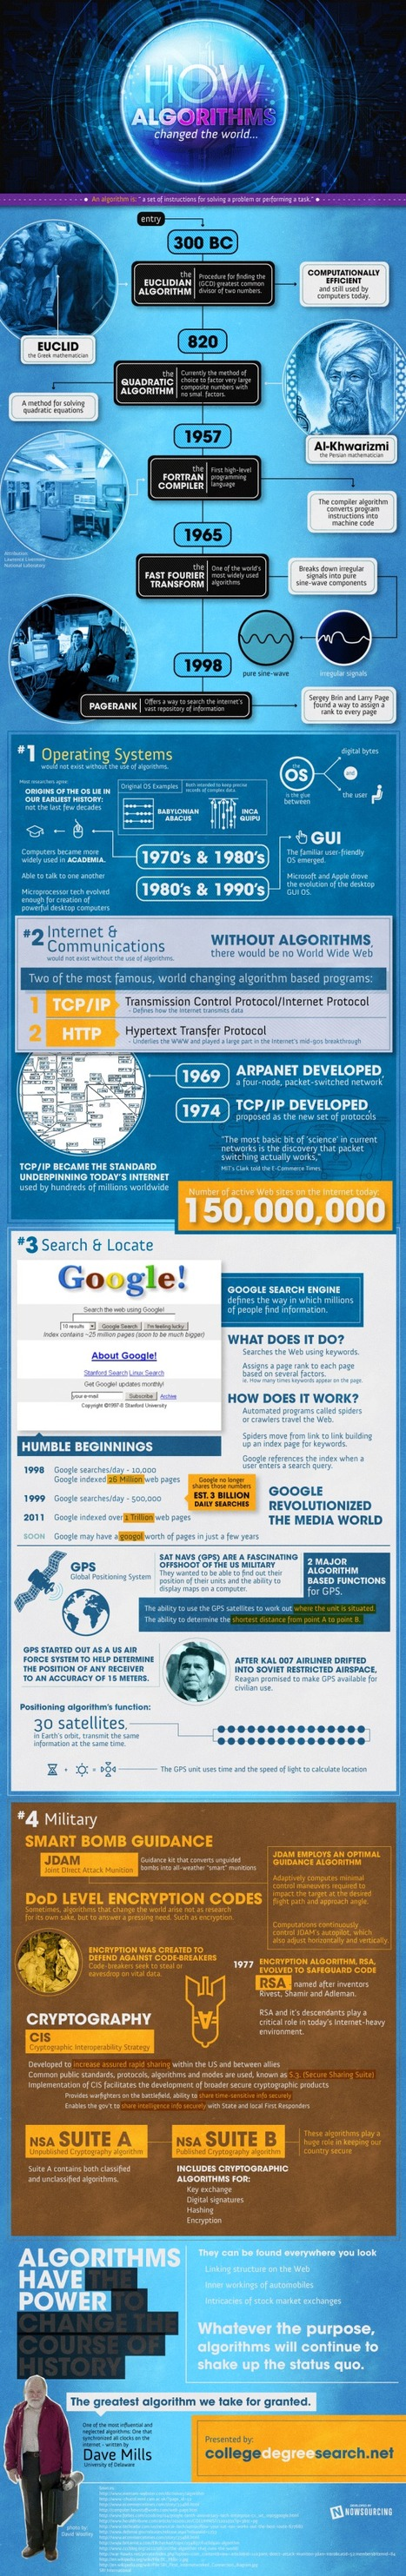 How Algorithms Changed The World [Infographic] | The Curious World | Scoop.it